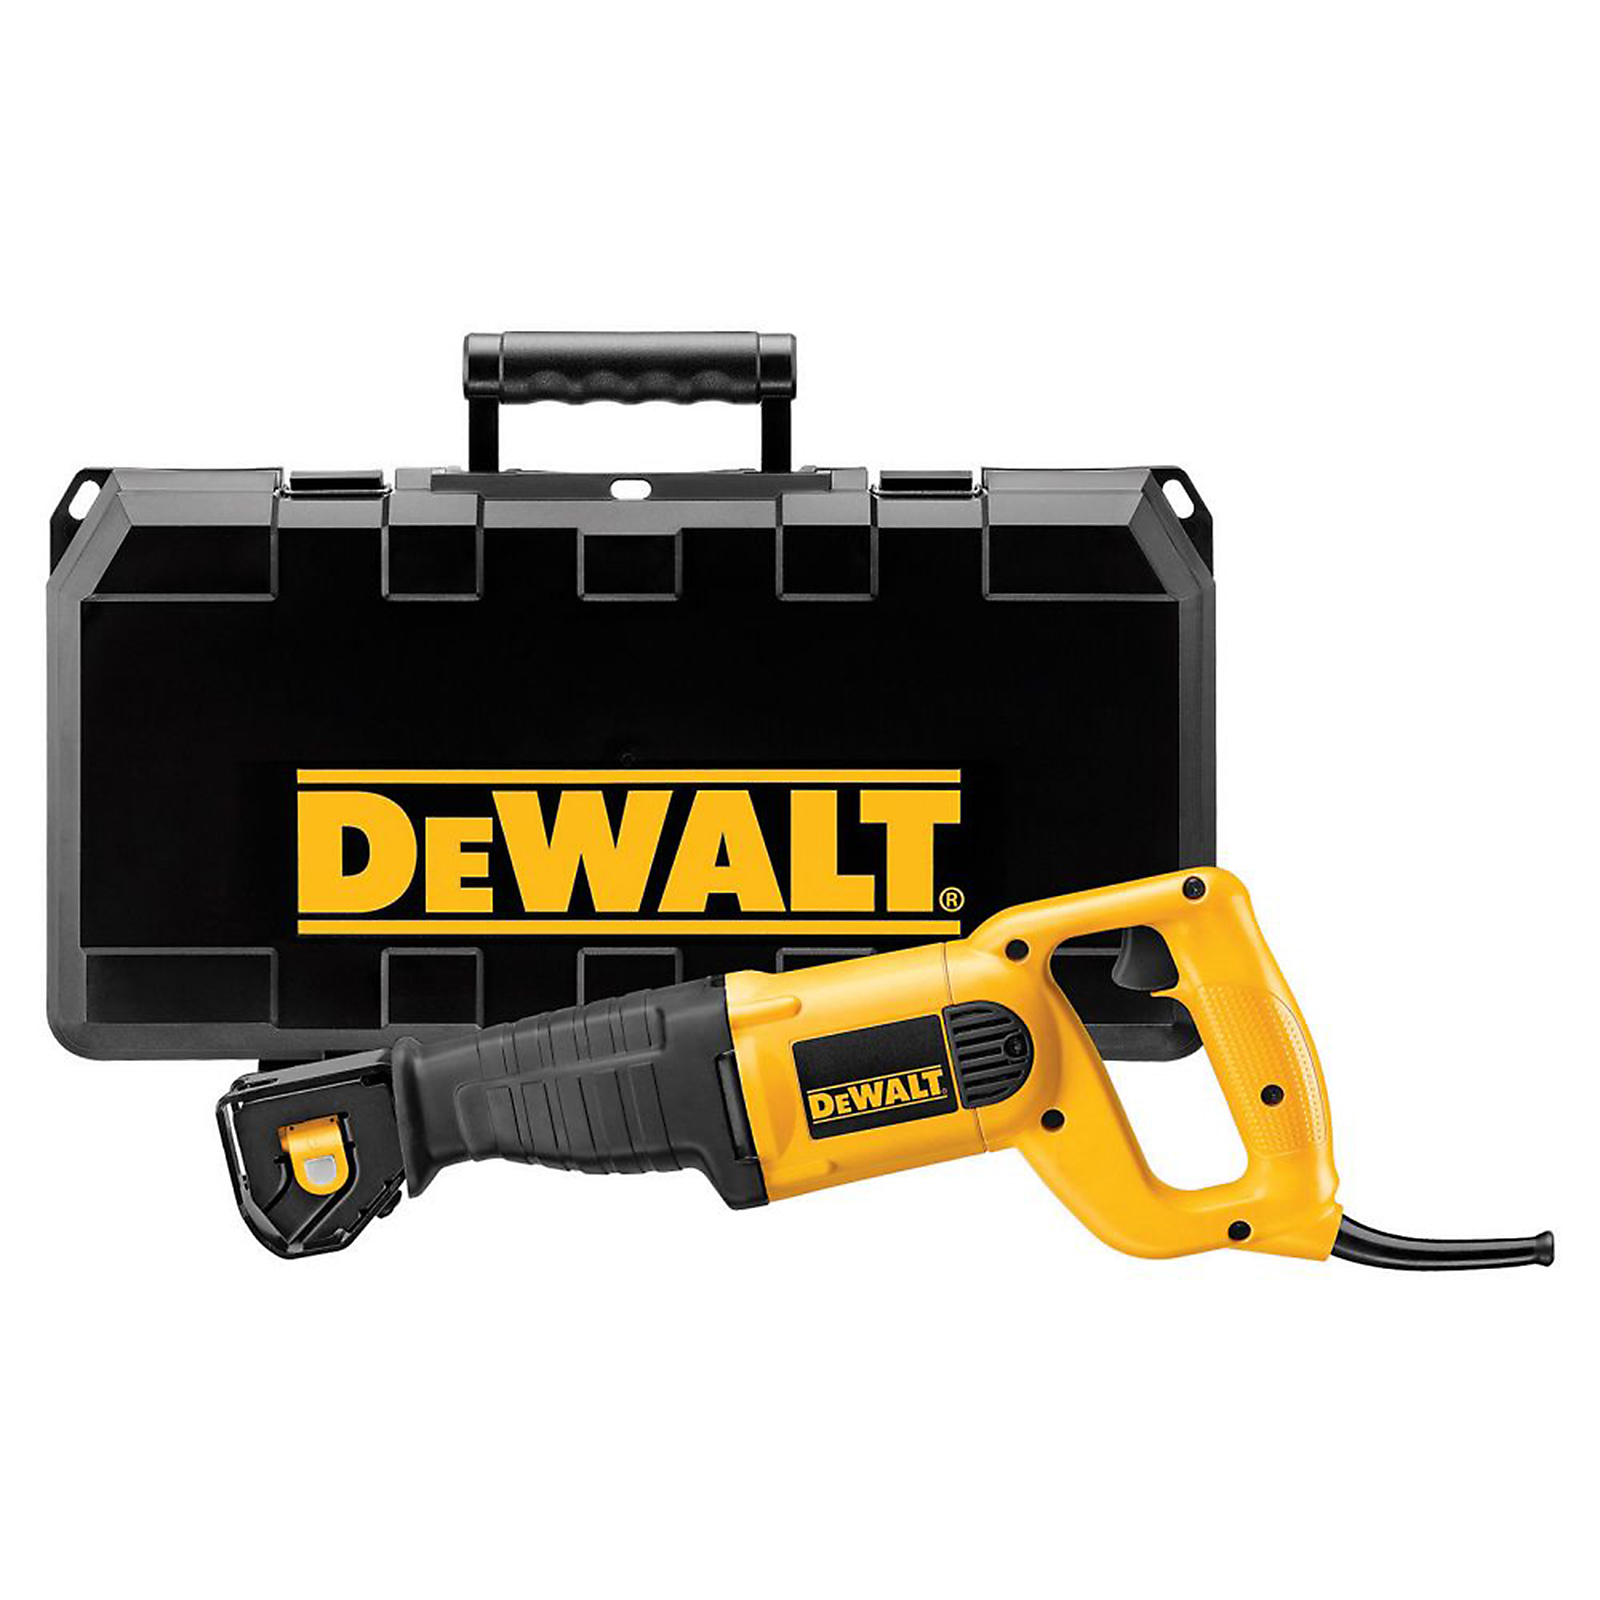 DeWalt 10.0 Amp Reciprocating Saw with 4-Position Blade Clamp